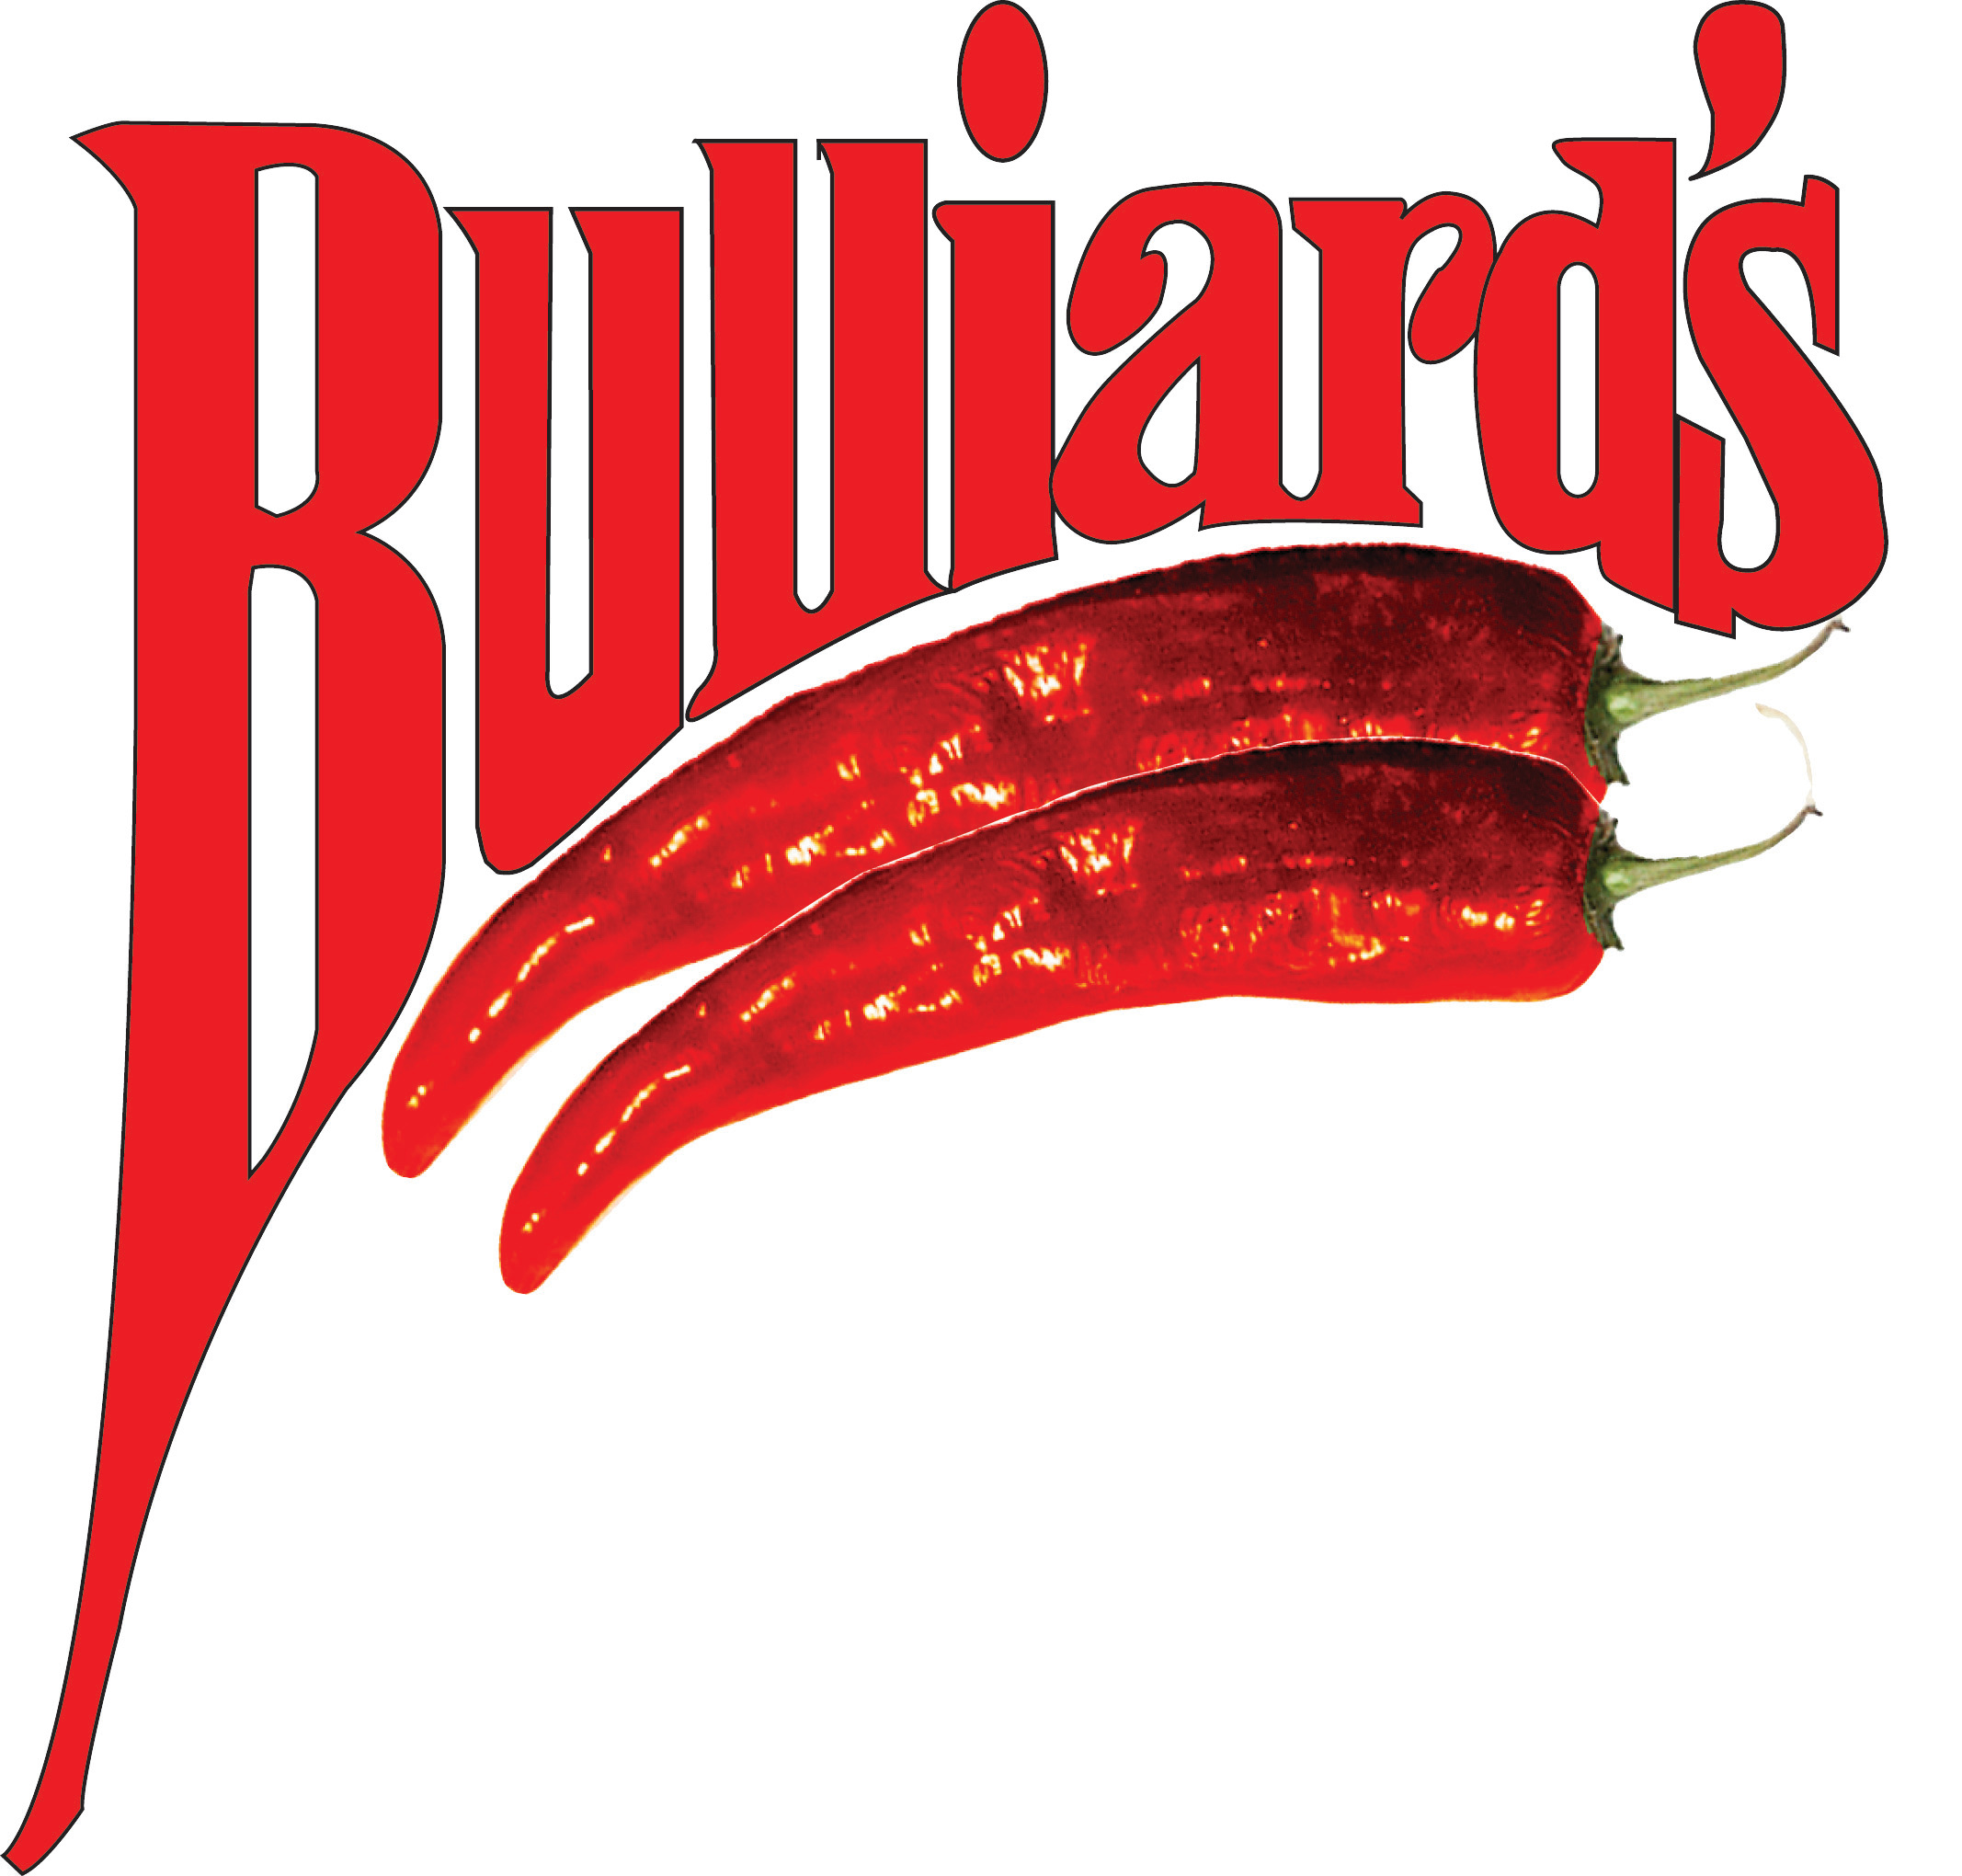 Bulliard logo copy